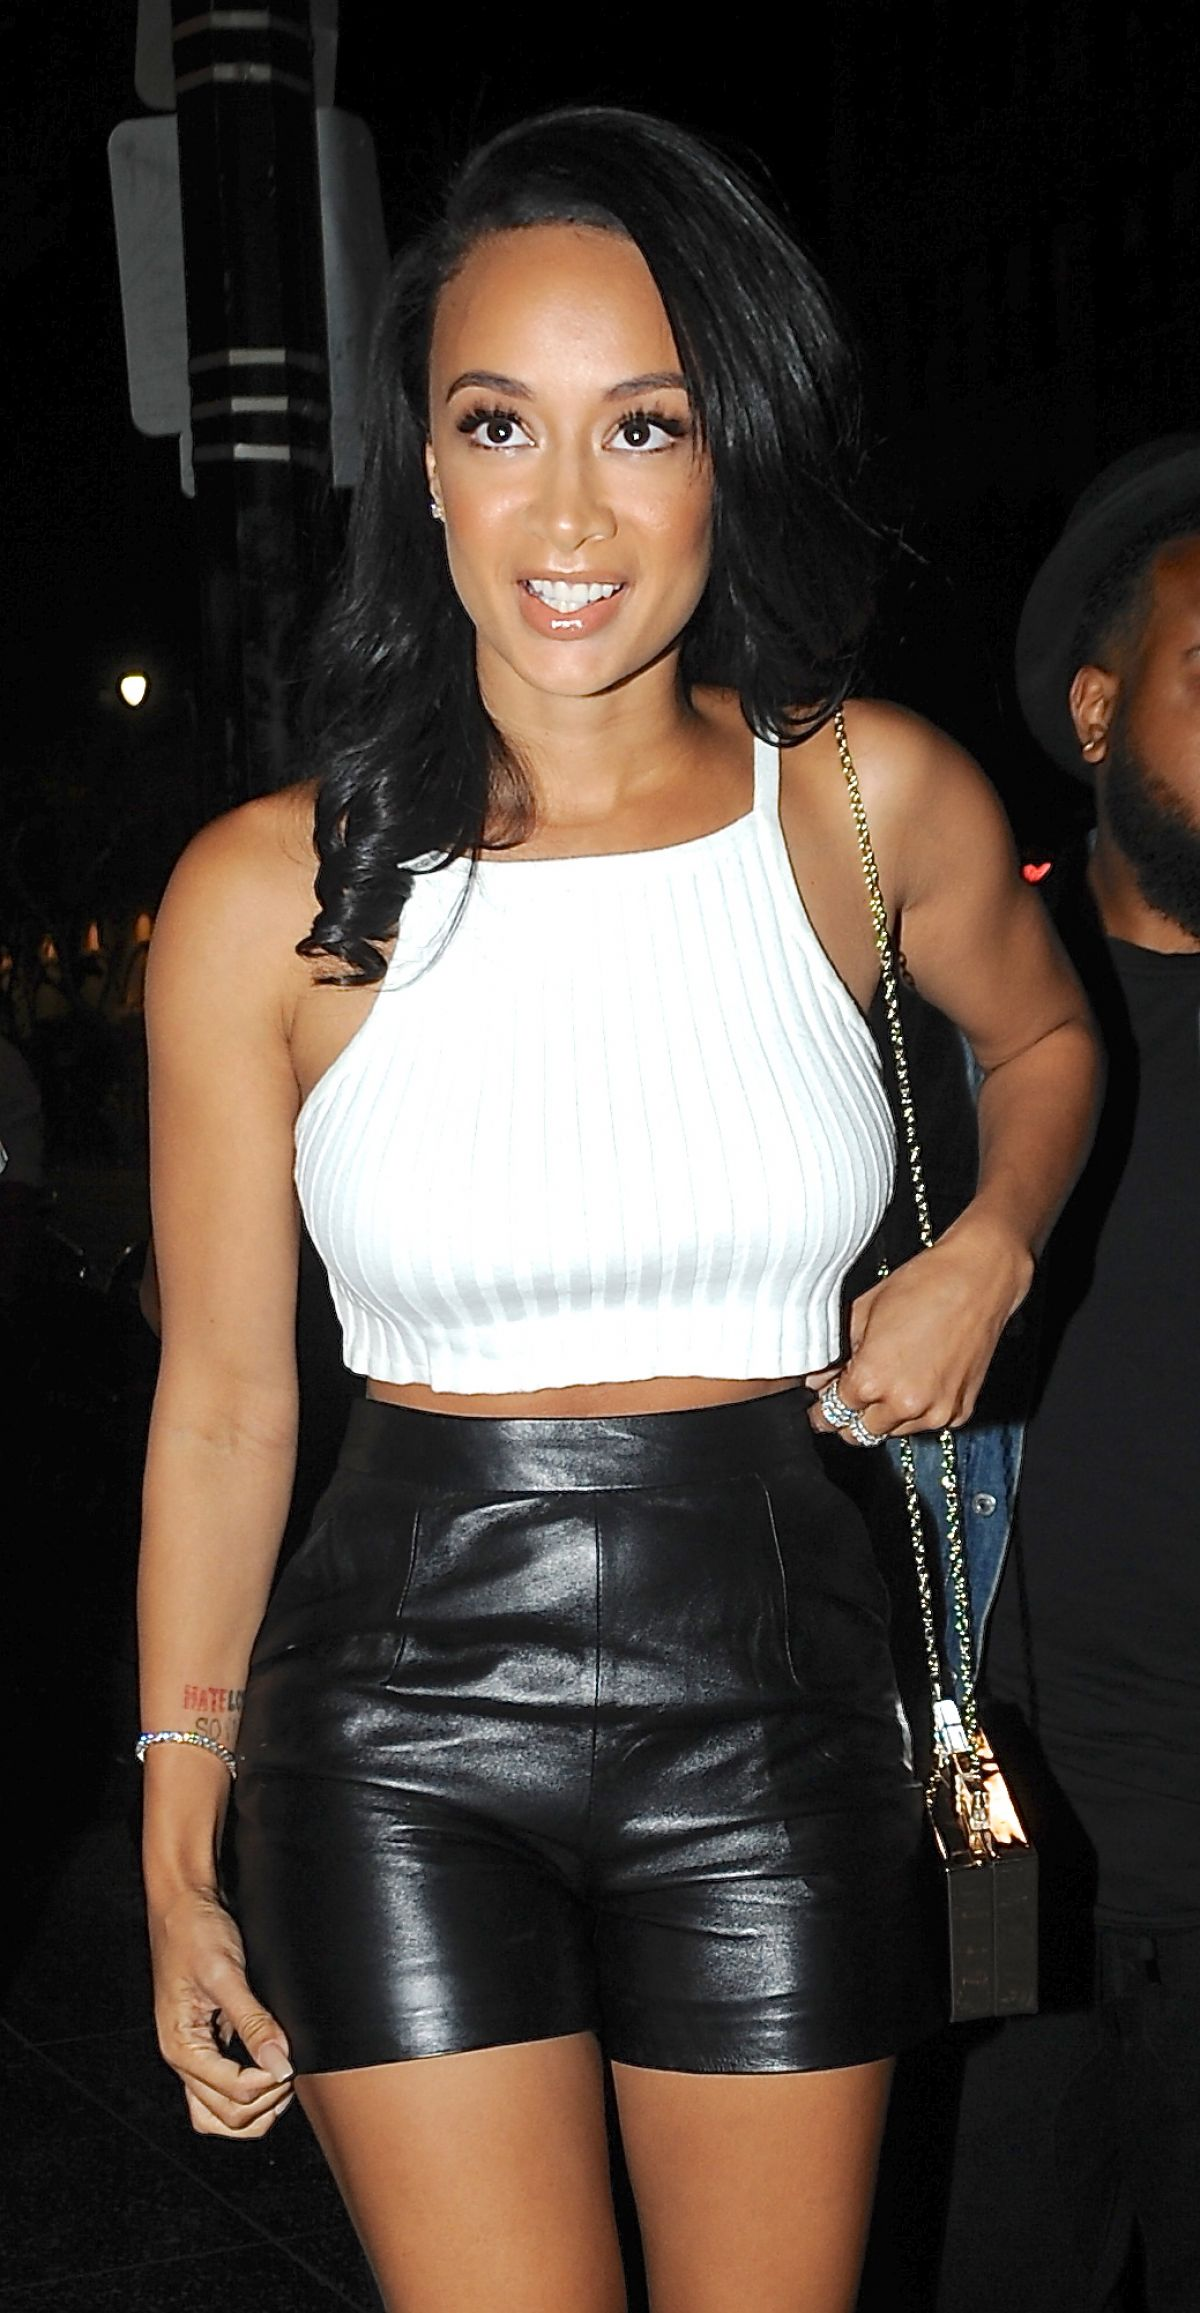 DRAYA MICHELE at Supperclub in Los Angeles - HawtCelebs